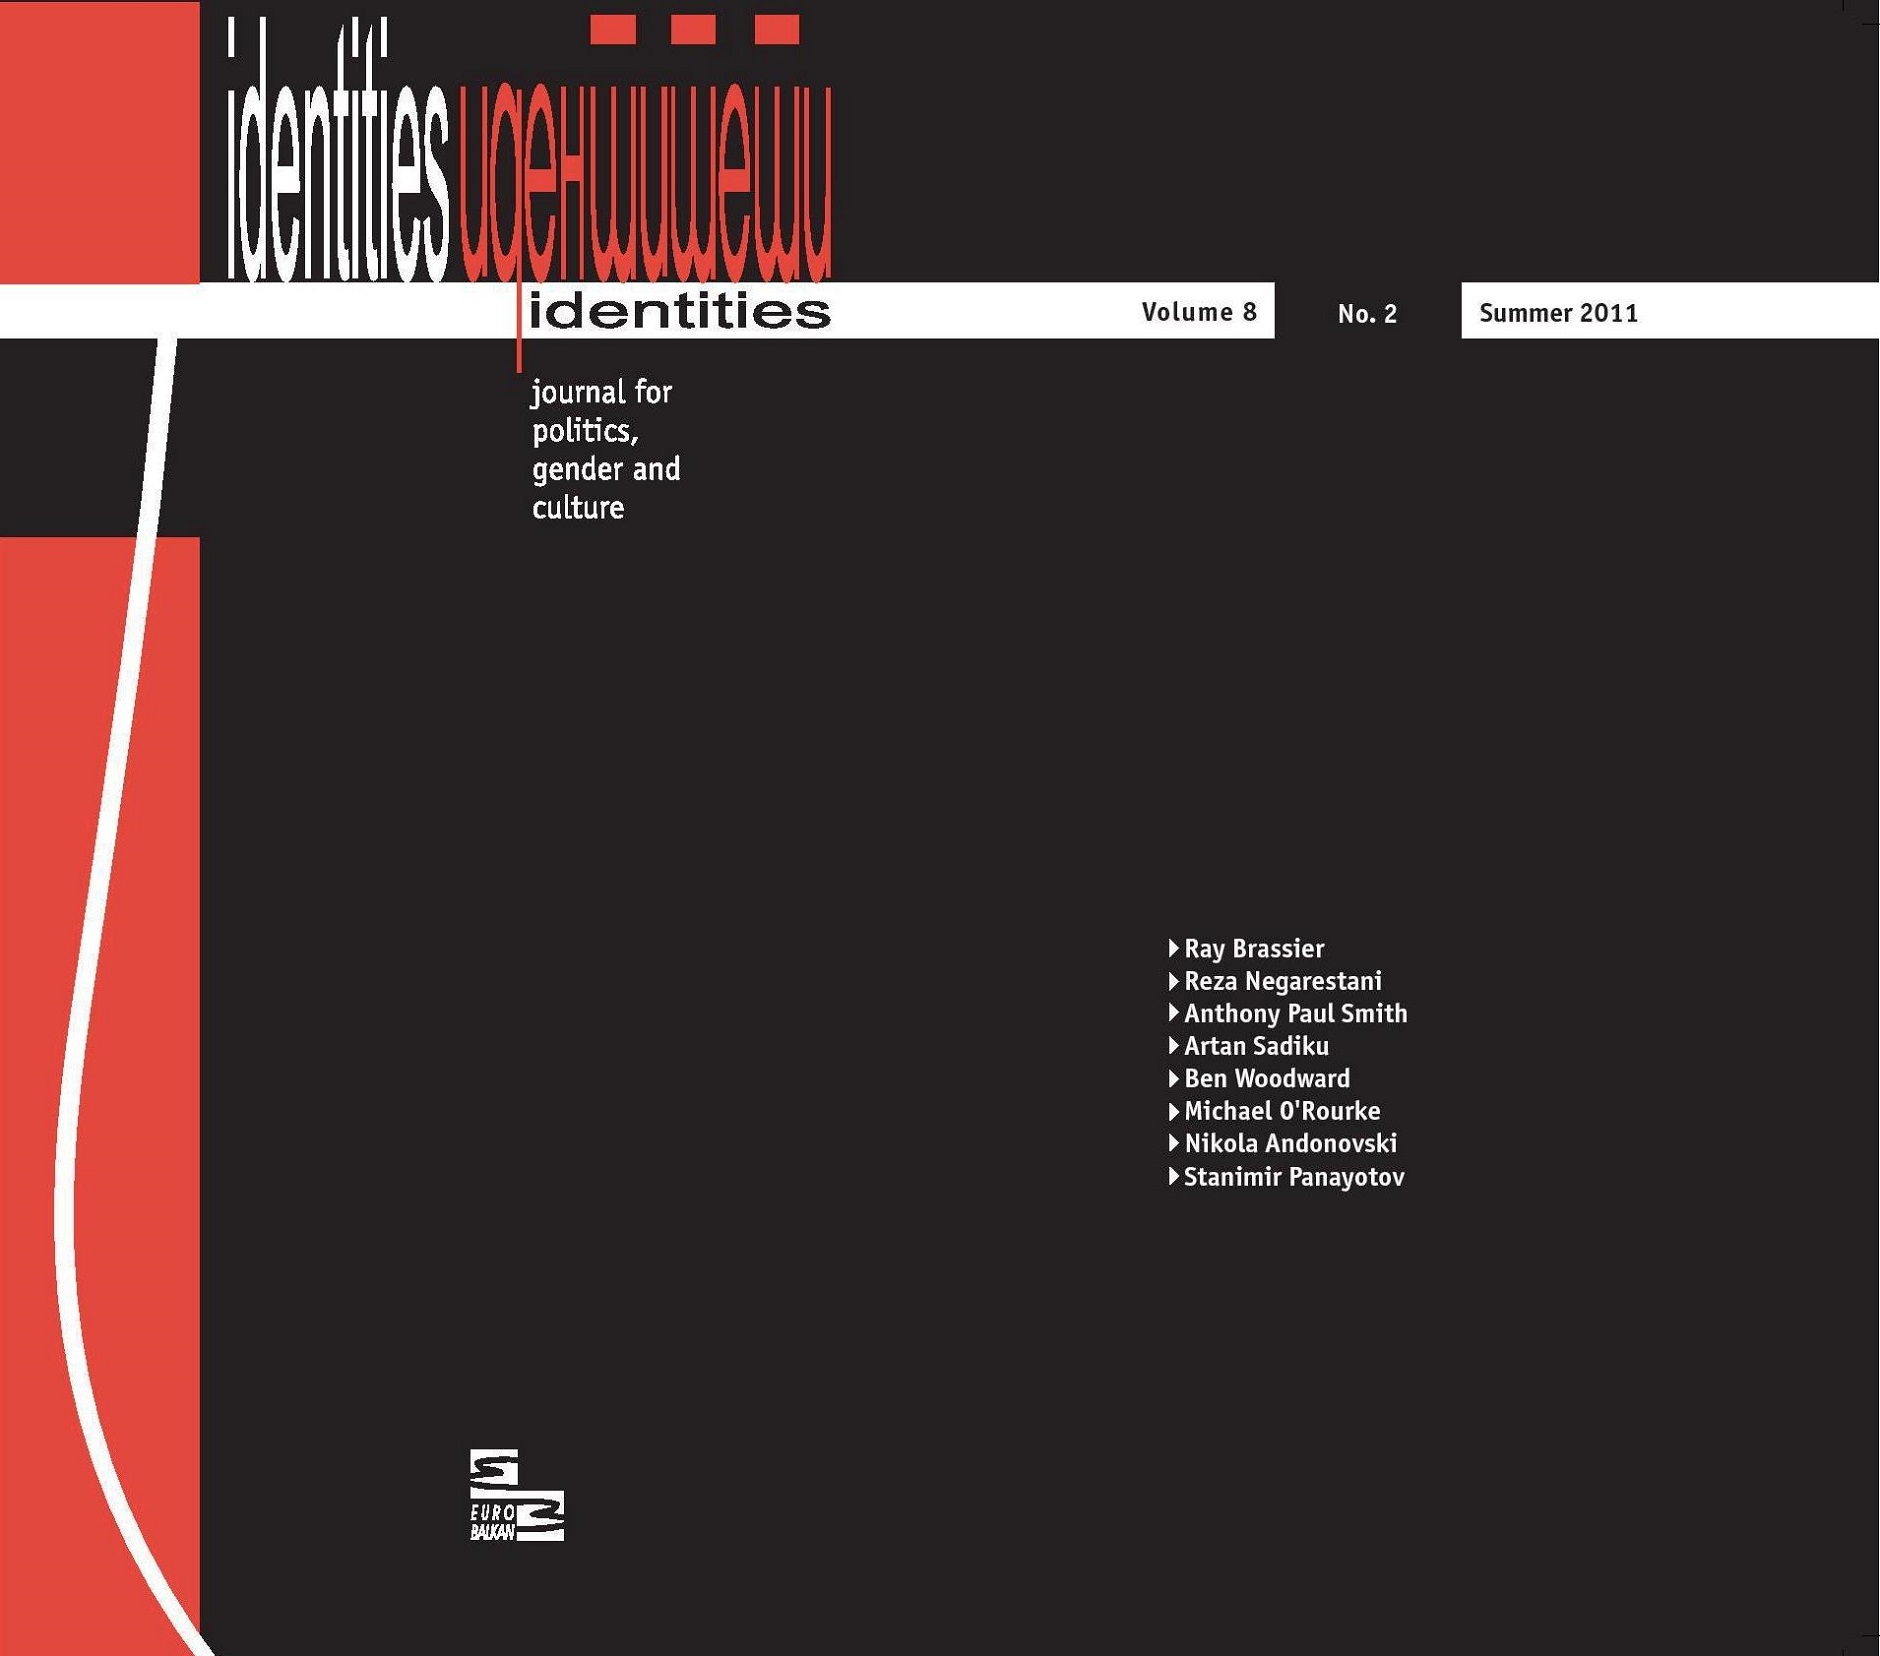 View Vol. 8 No. 2 (2011): Vol. 8, No. 2 (Summer 2011) - Issue No. 19   Topic: Heretical Realisms, edited by Katerina Kolozova and Stanimir Panayotov